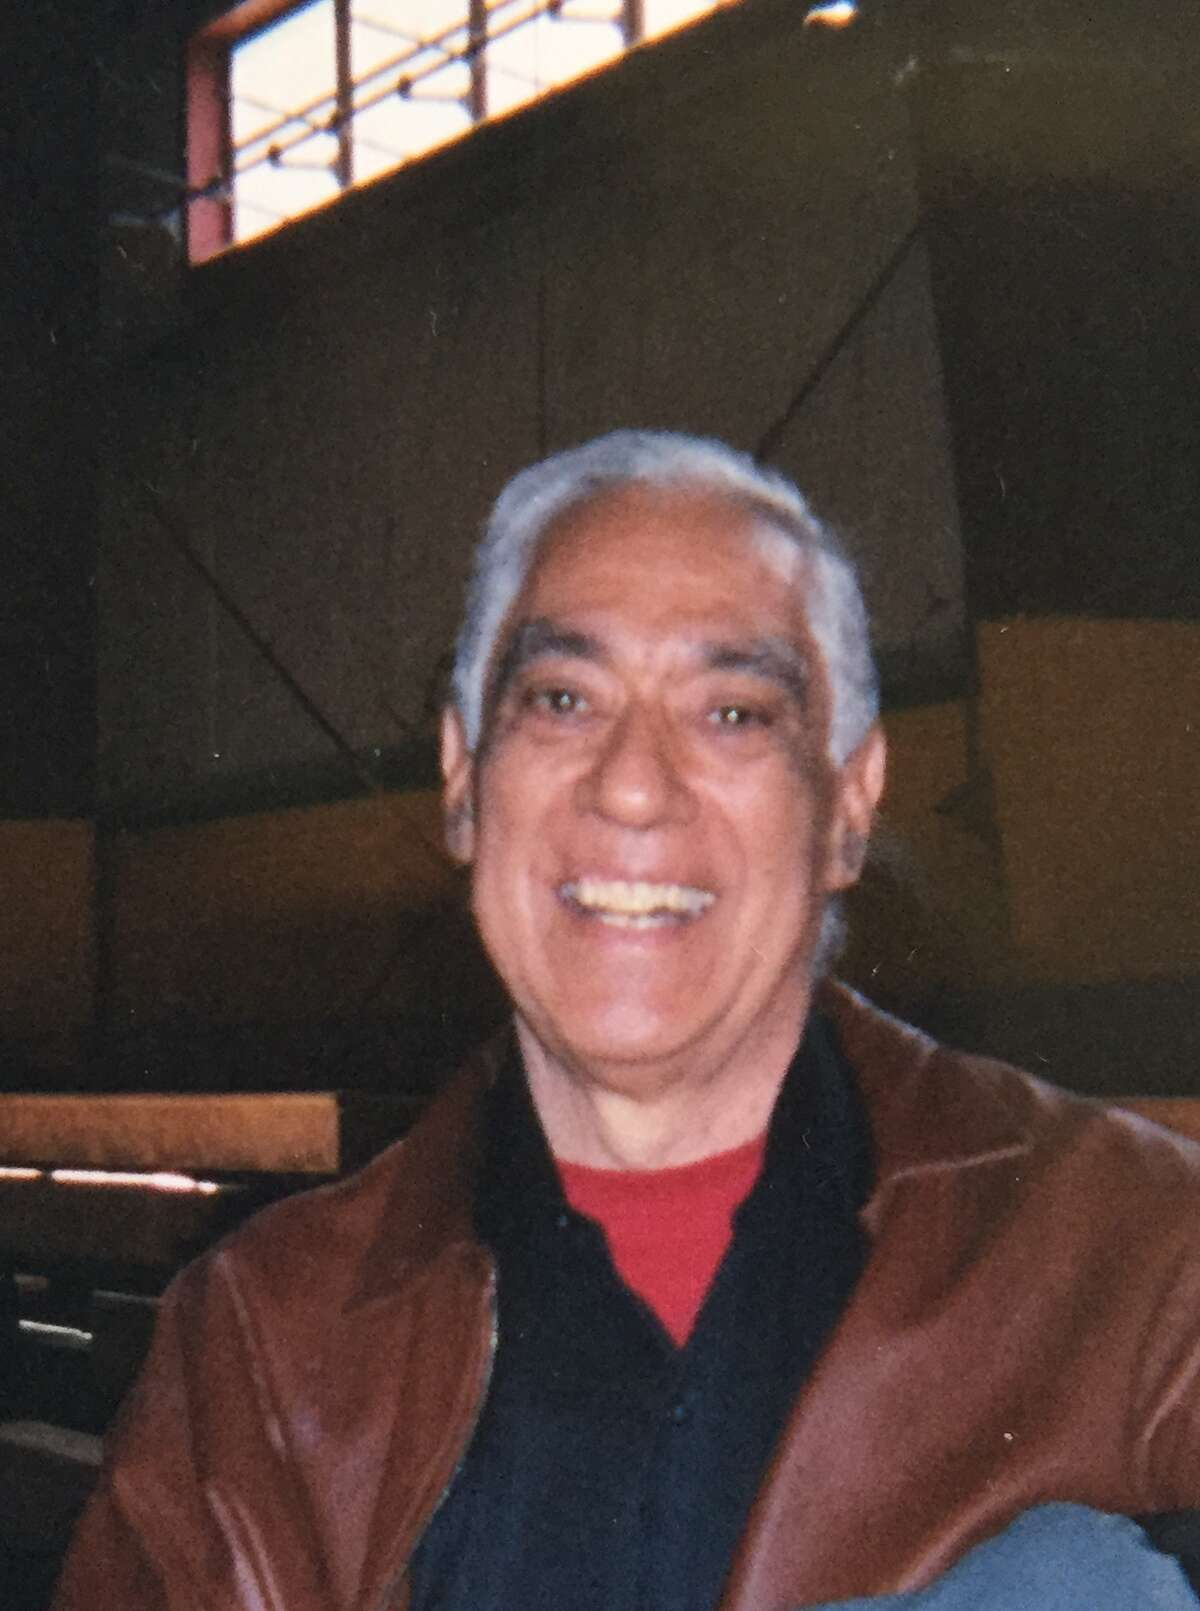 After serving as the executive director of the San Antonio Neighborhood Youth Organization for 23 years, Julian F. Rodriguez died Jan. 27 at the age of 75.More: Rodriguez helped San Antonio youths